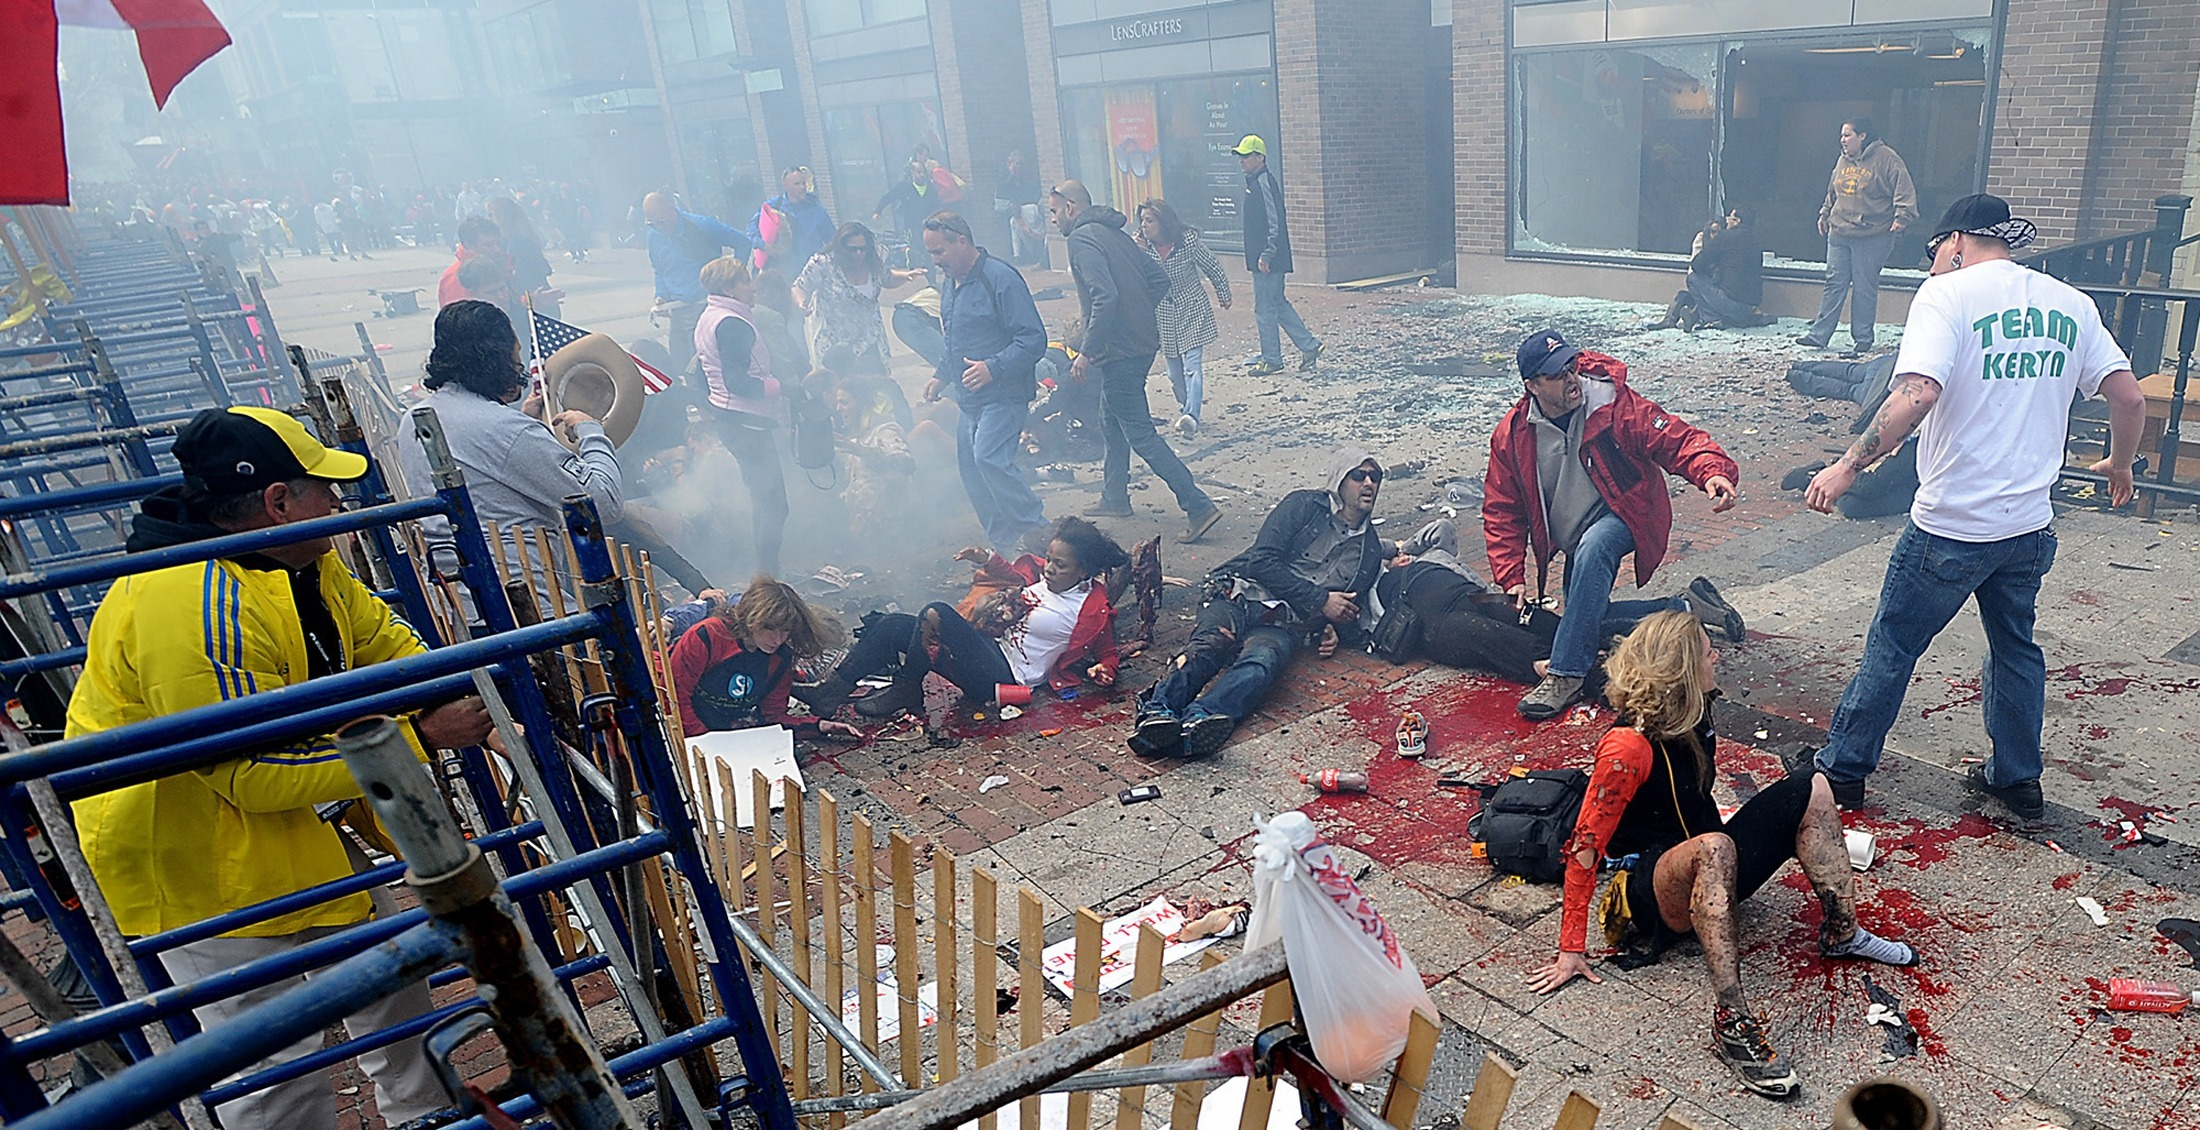 Wounded spectators lie injured following an explosion at the Boston Marathon